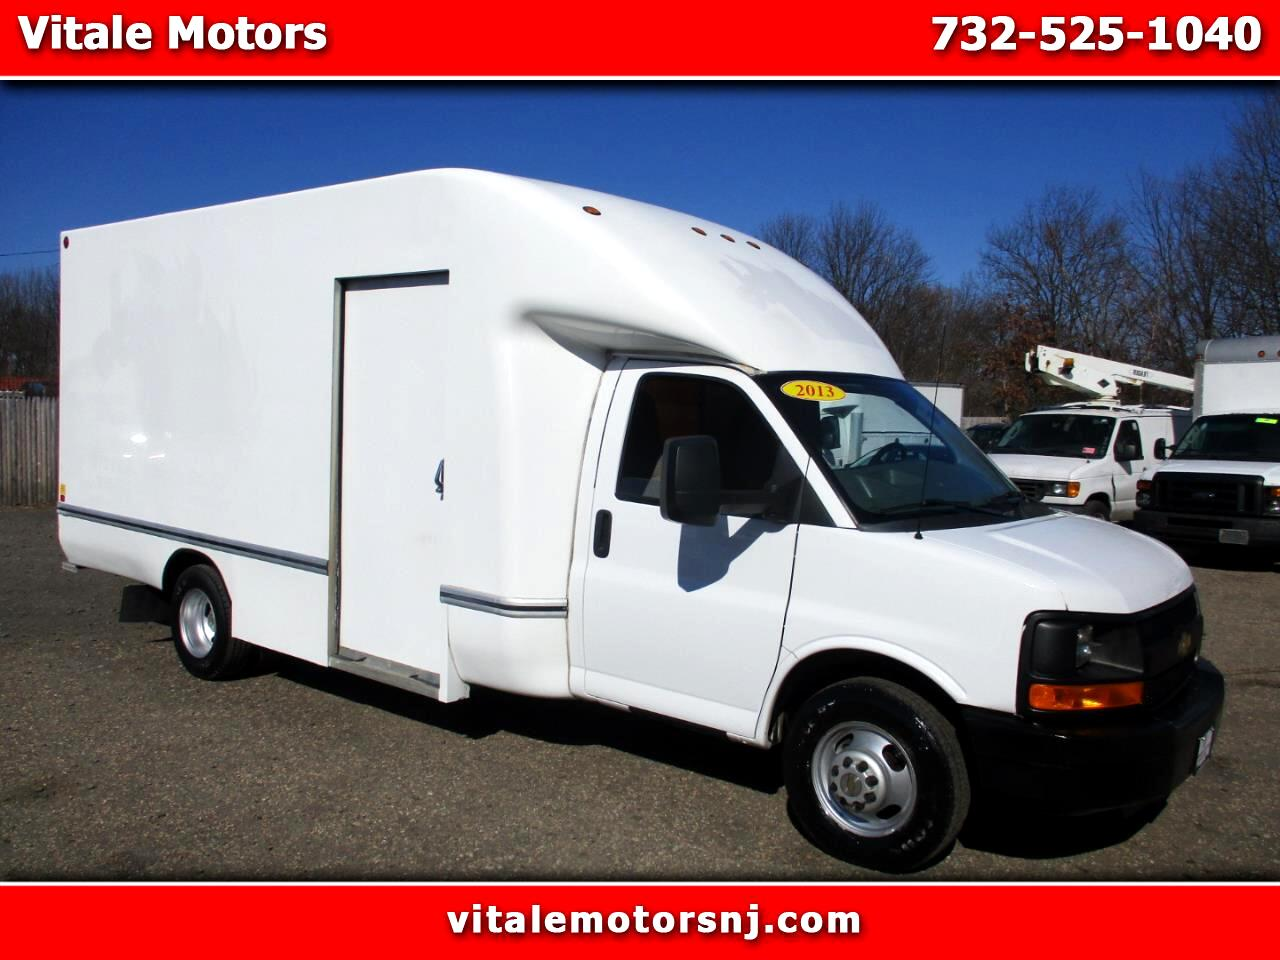 2013 Chevrolet Express G3500 15 FOOT STEP VAN * BOX TRUCK